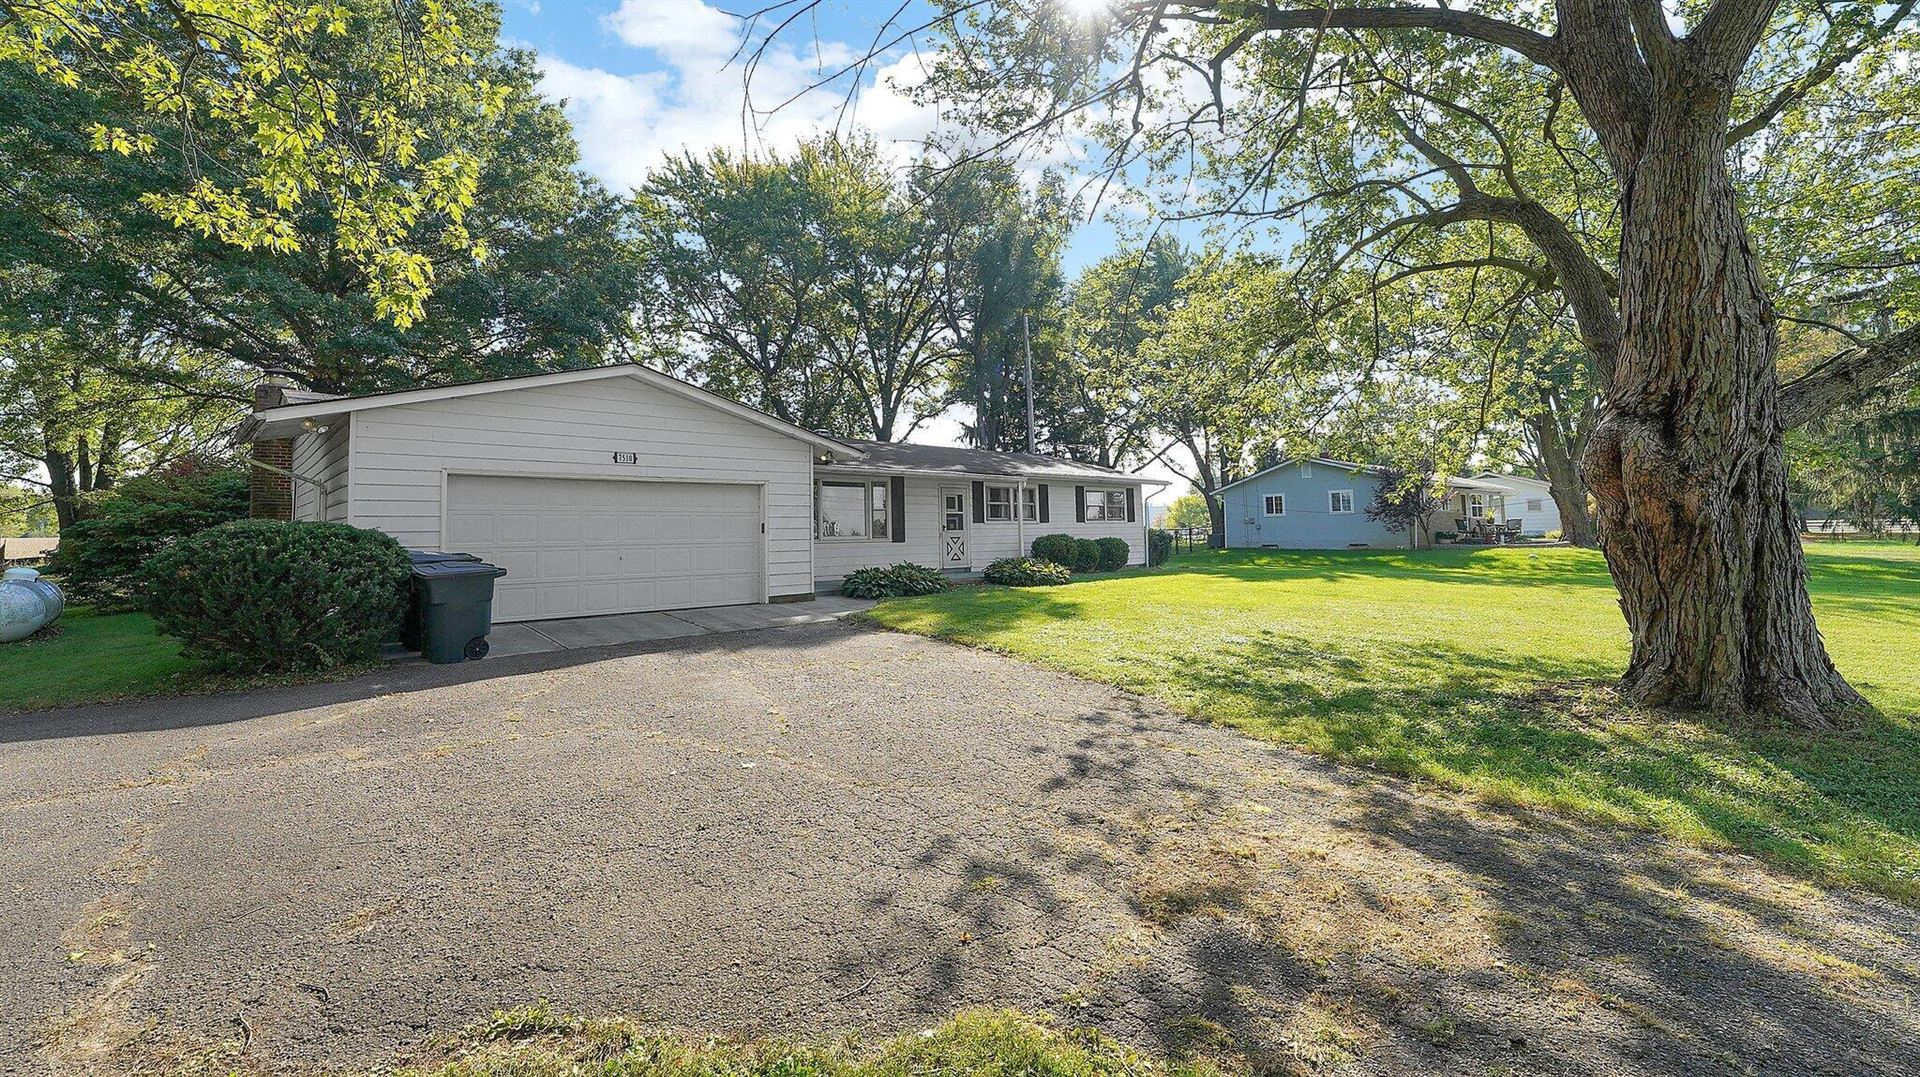 Photo of 7510 New Albany Condit Road, New Albany, OH 43054 (MLS # 221040974)